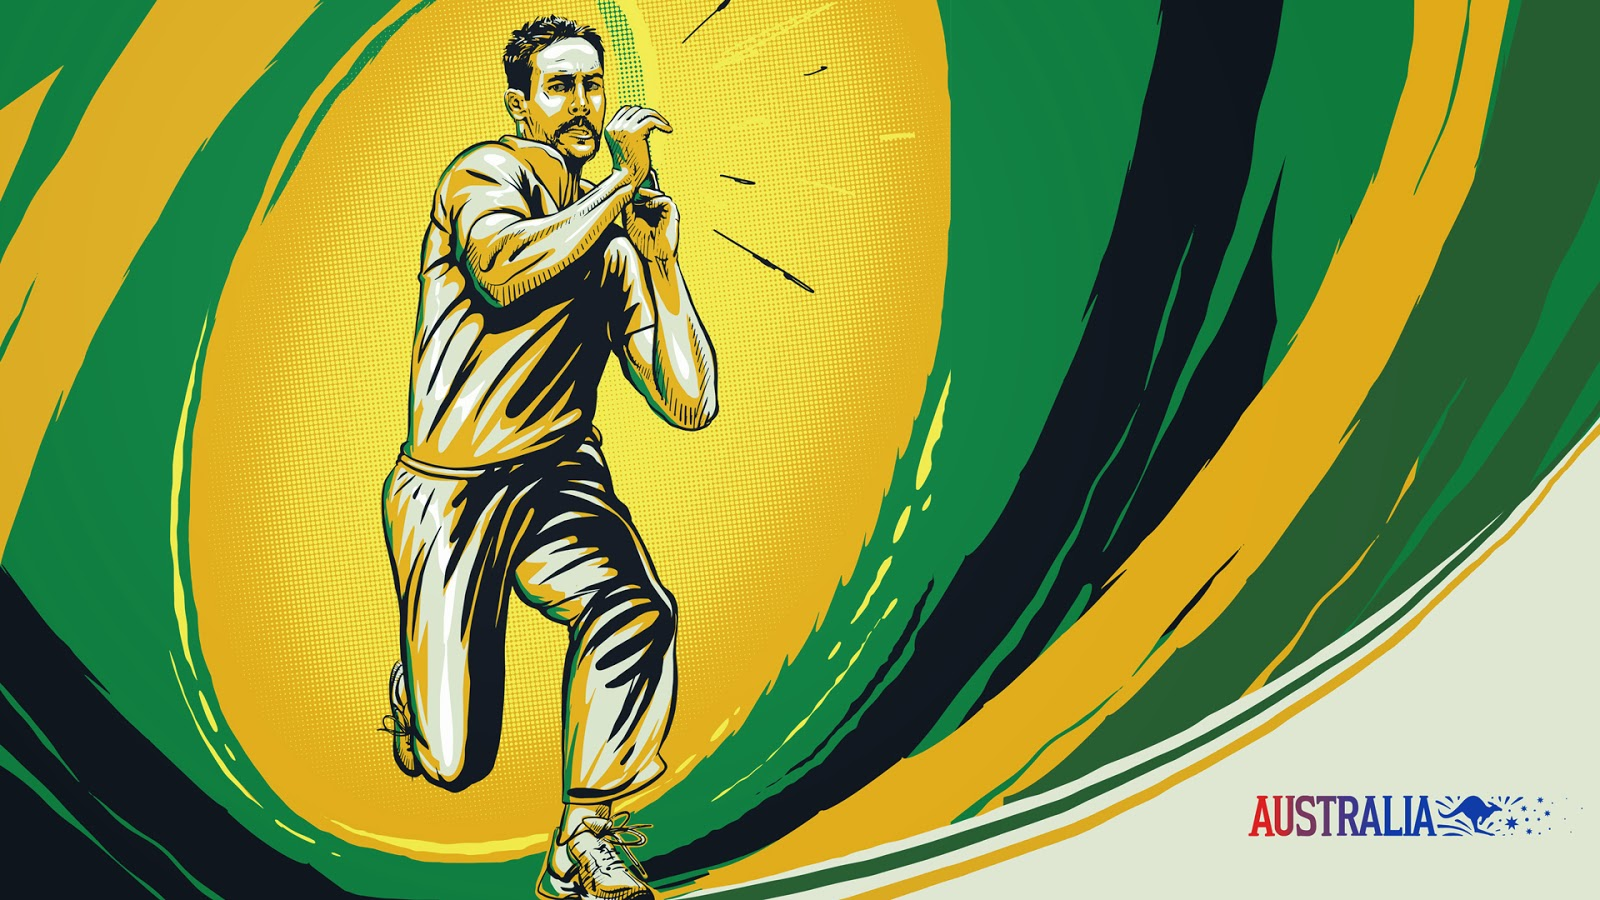 Mitchell Johnson Australian cricketer illustration sketch